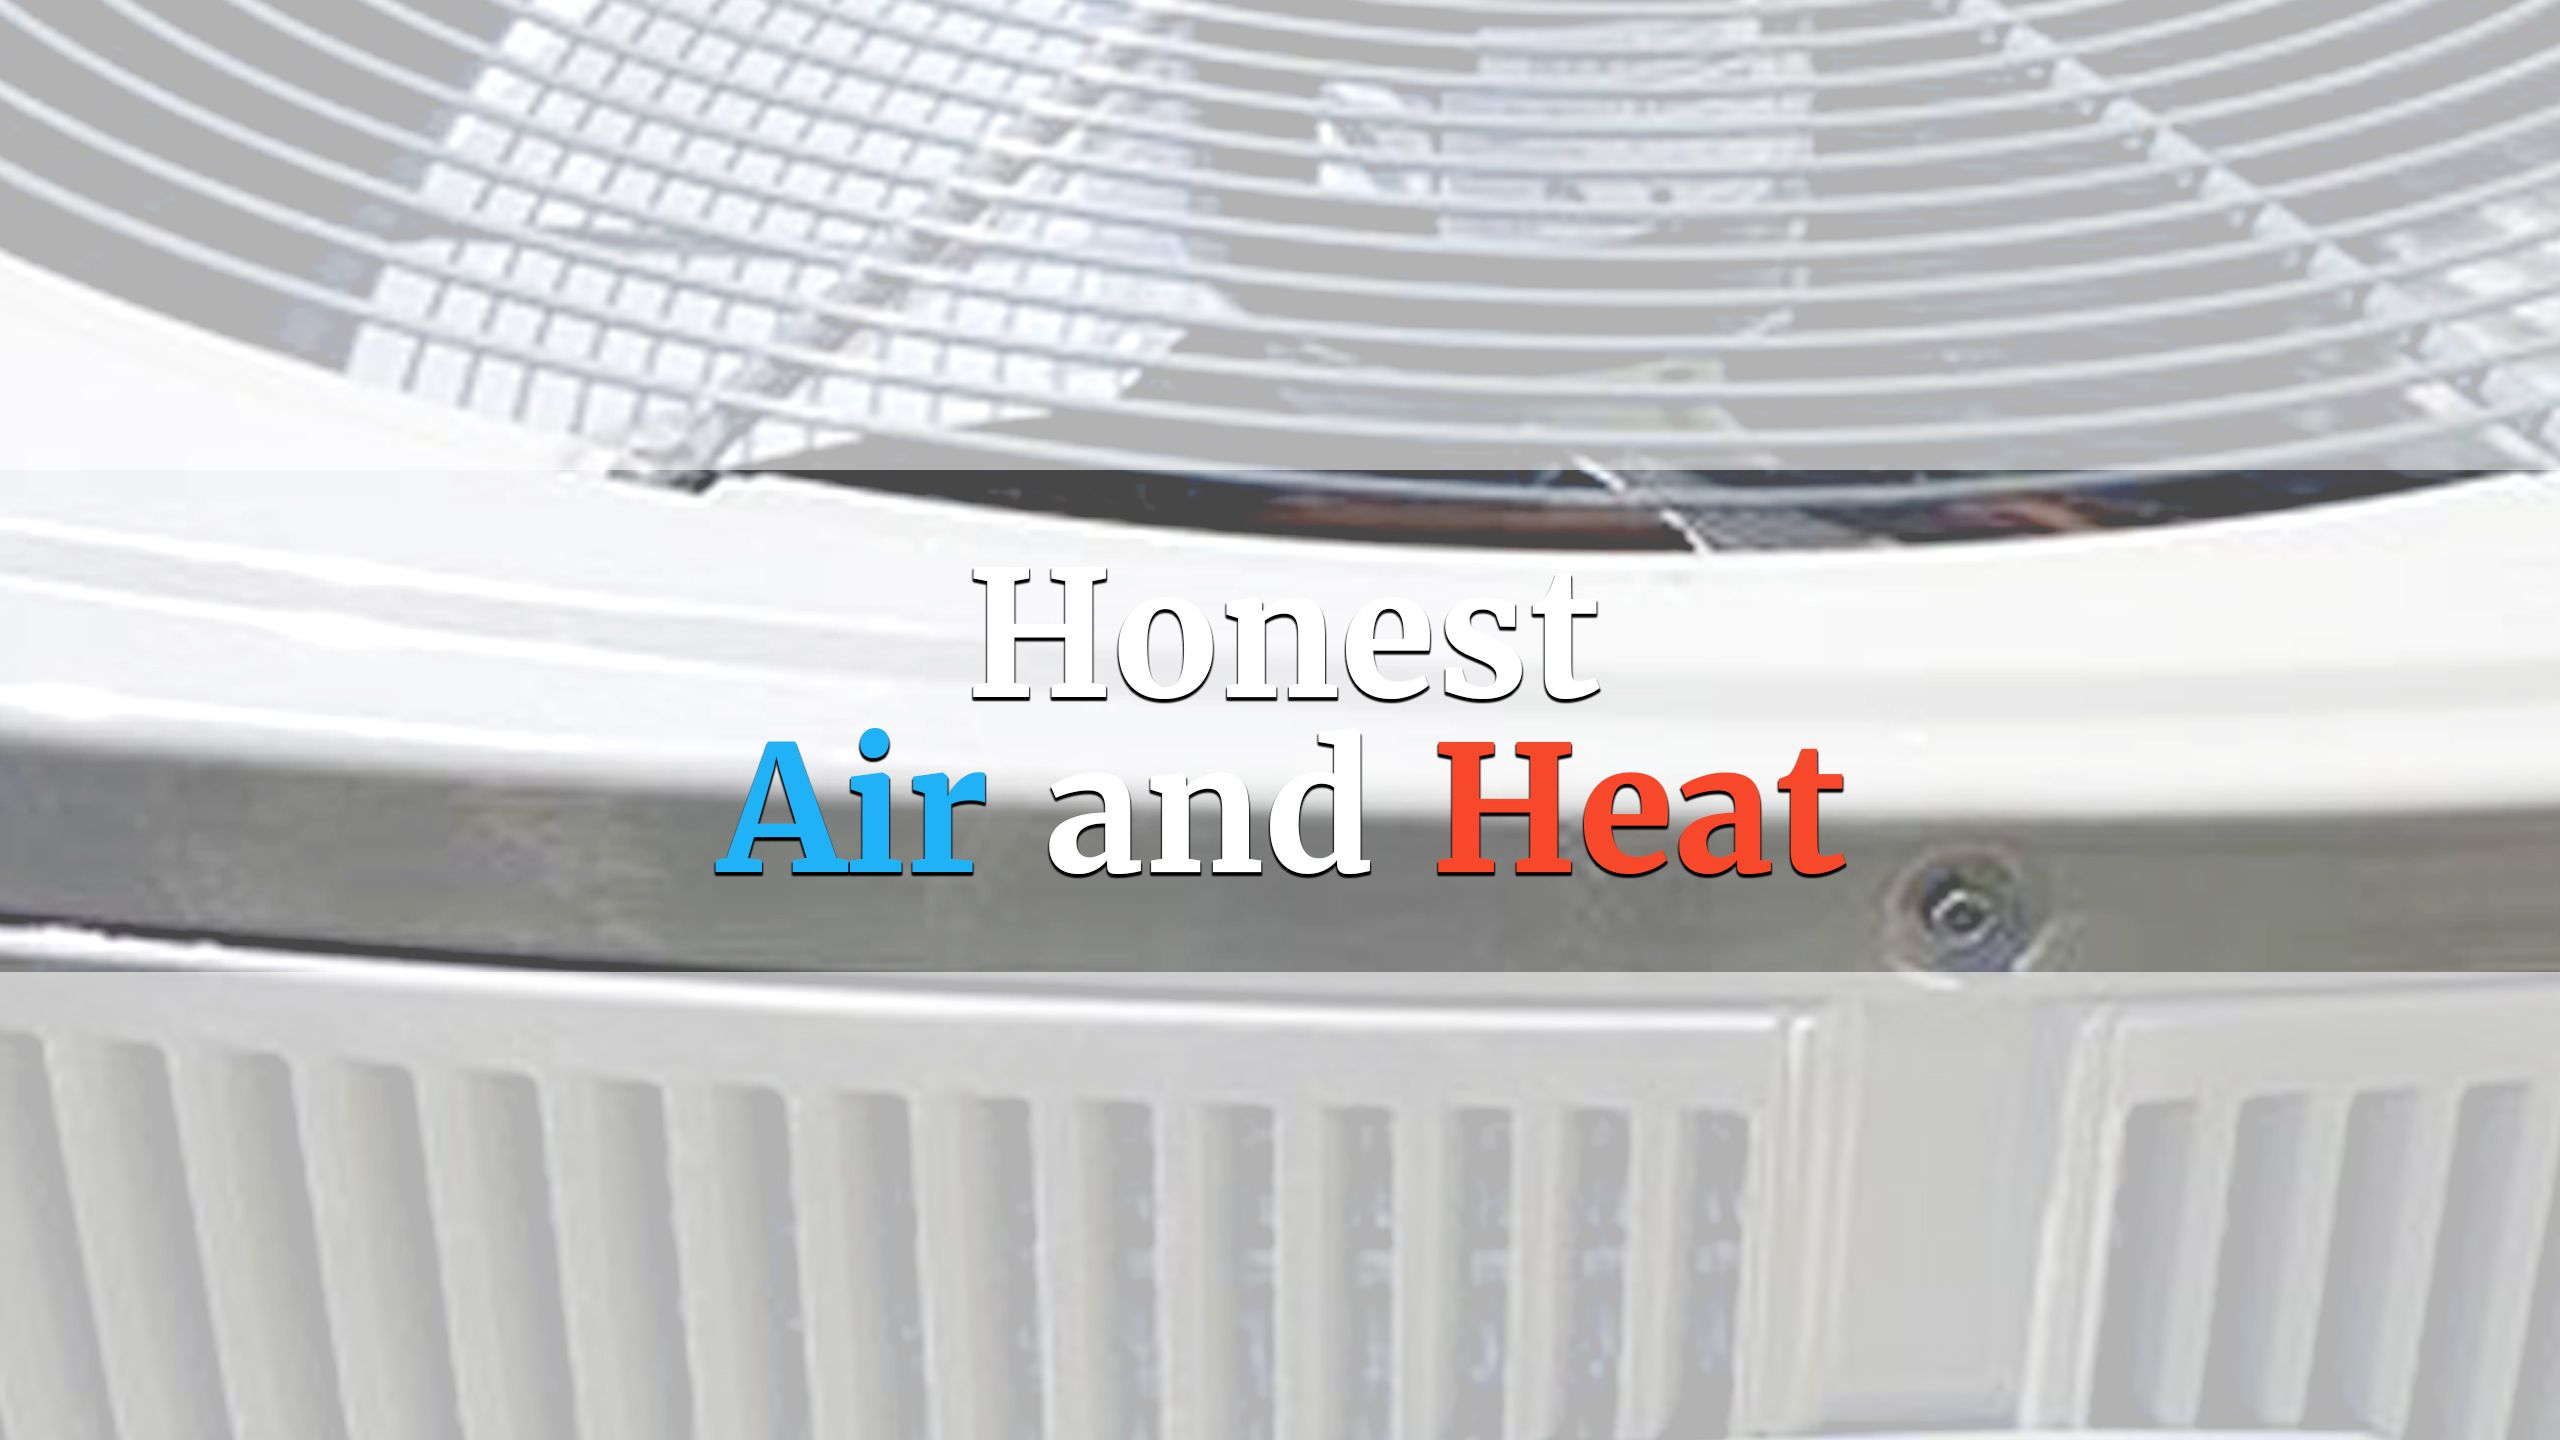 Honest Air and Heat is an Air Conditioning Contractor in